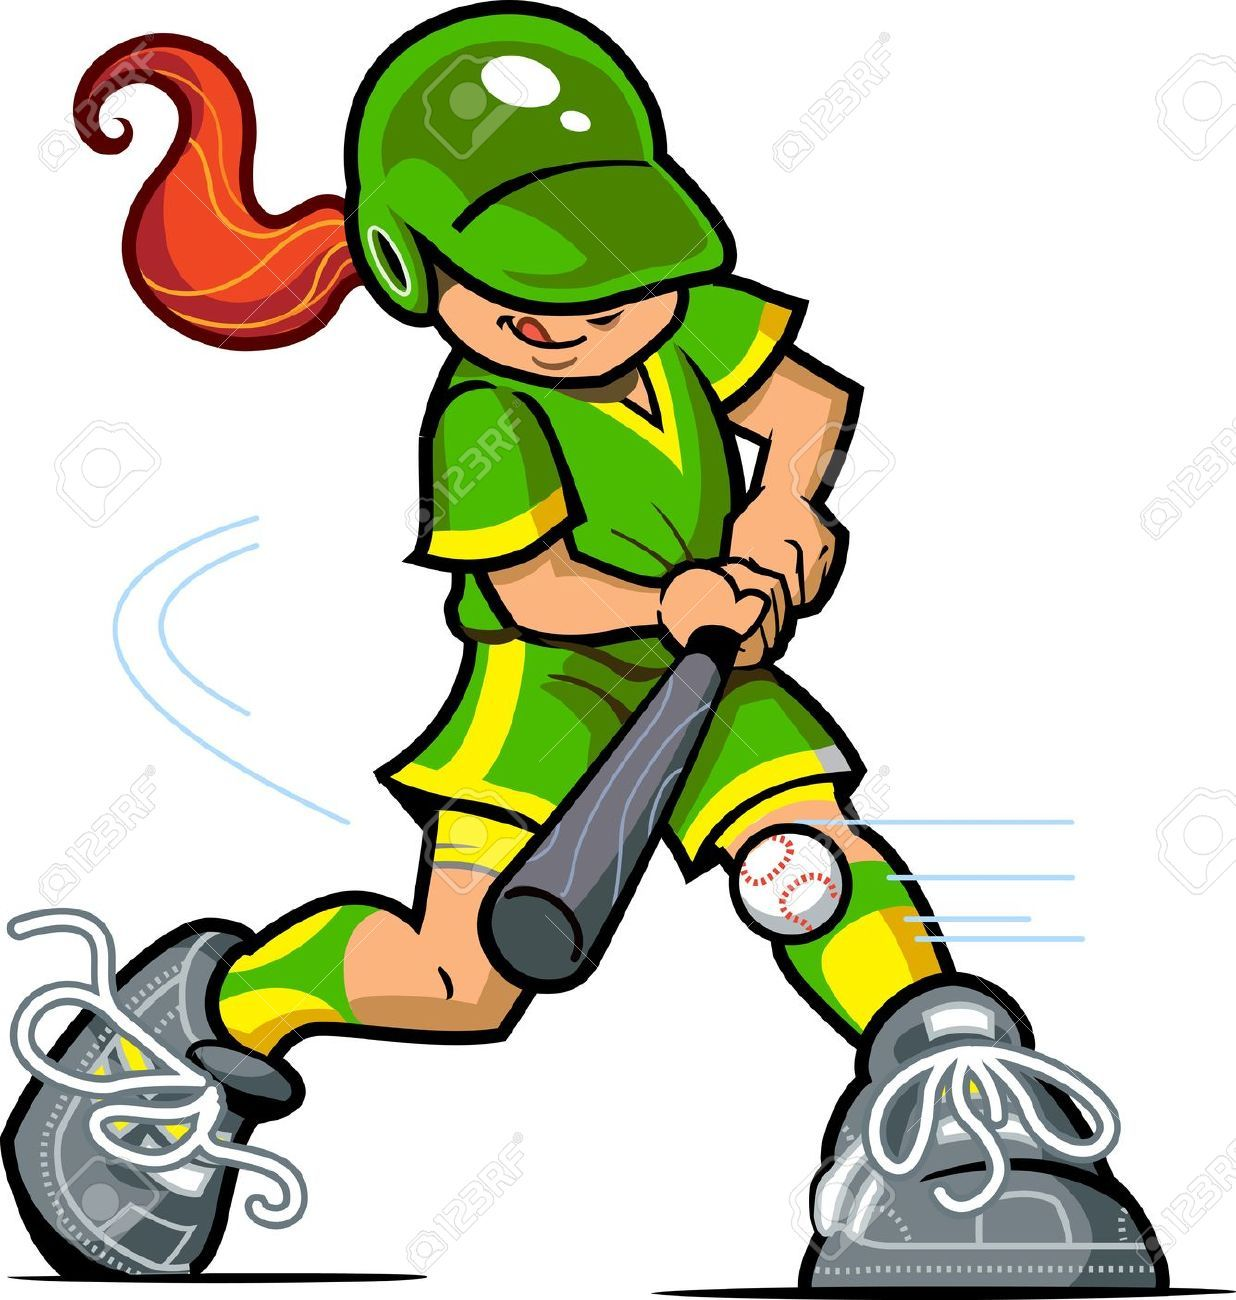 Softball clipart outfielder. Girl google search olivia